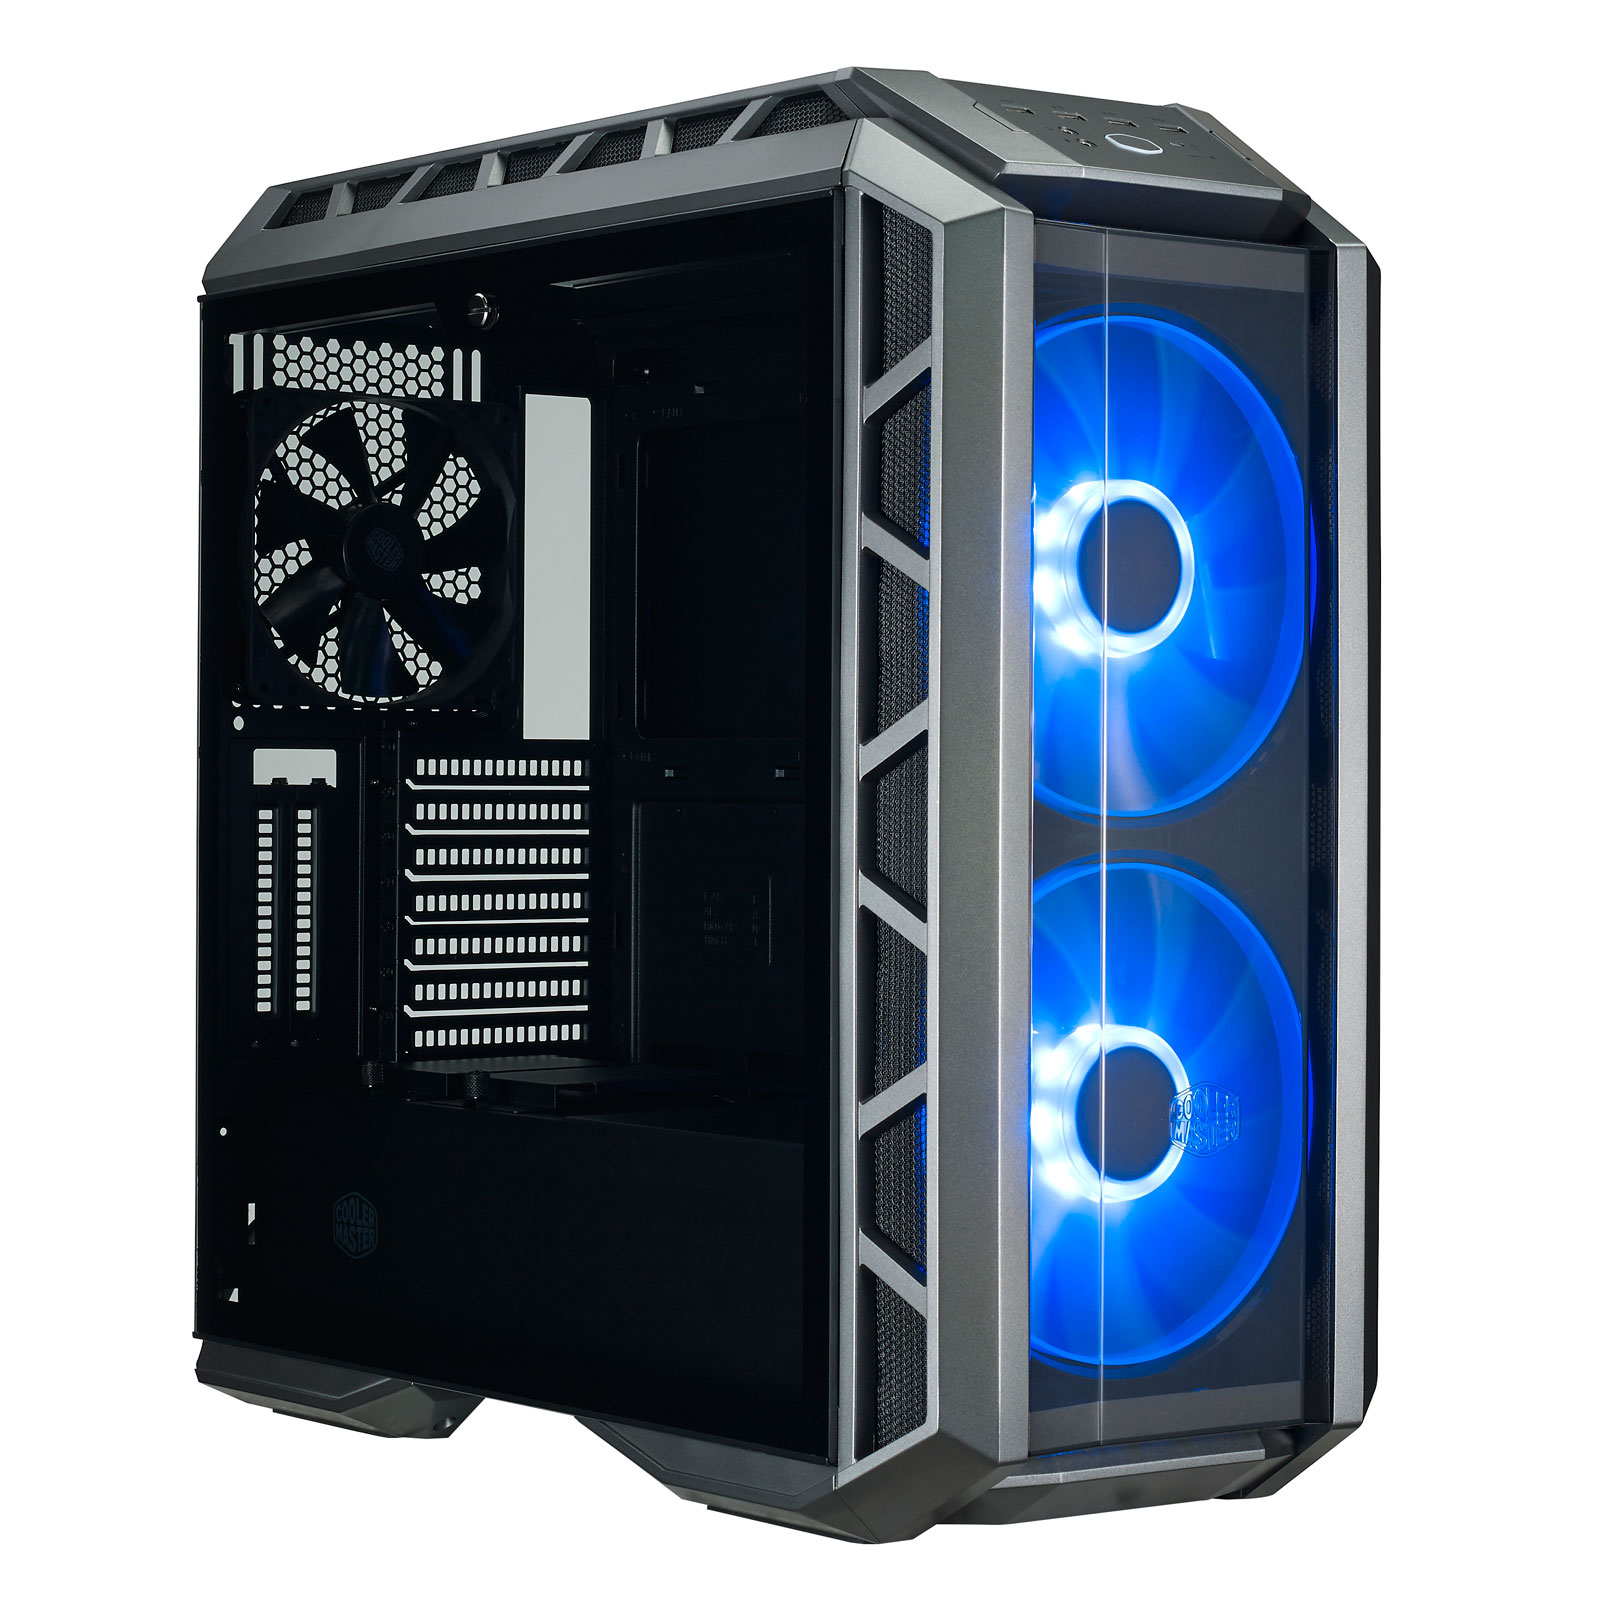 cooler master mastercase h500p bo tier pc cooler master ltd sur. Black Bedroom Furniture Sets. Home Design Ideas